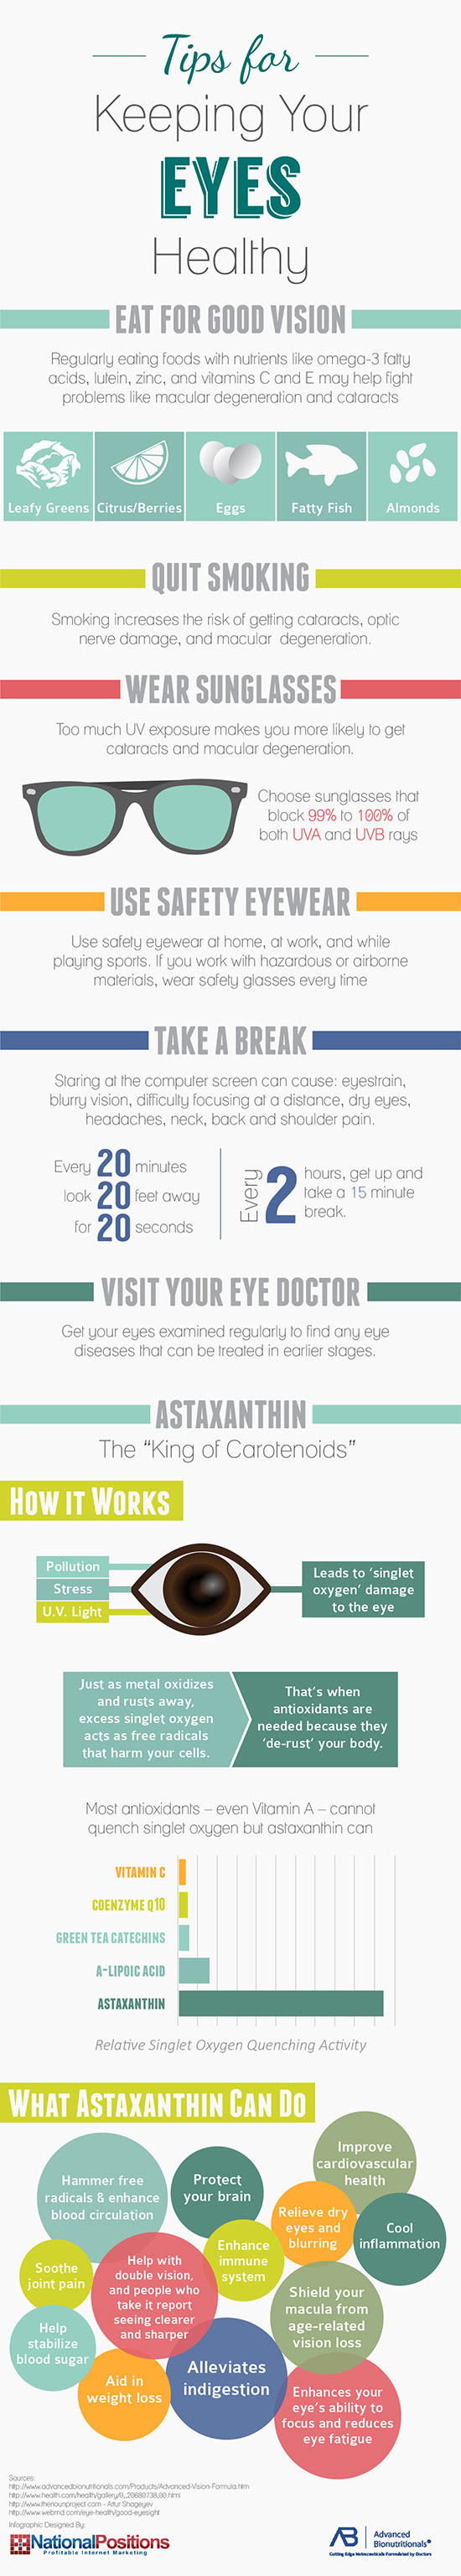 Infographic: Tips for Keeping Your Eyes Healthy #infographic